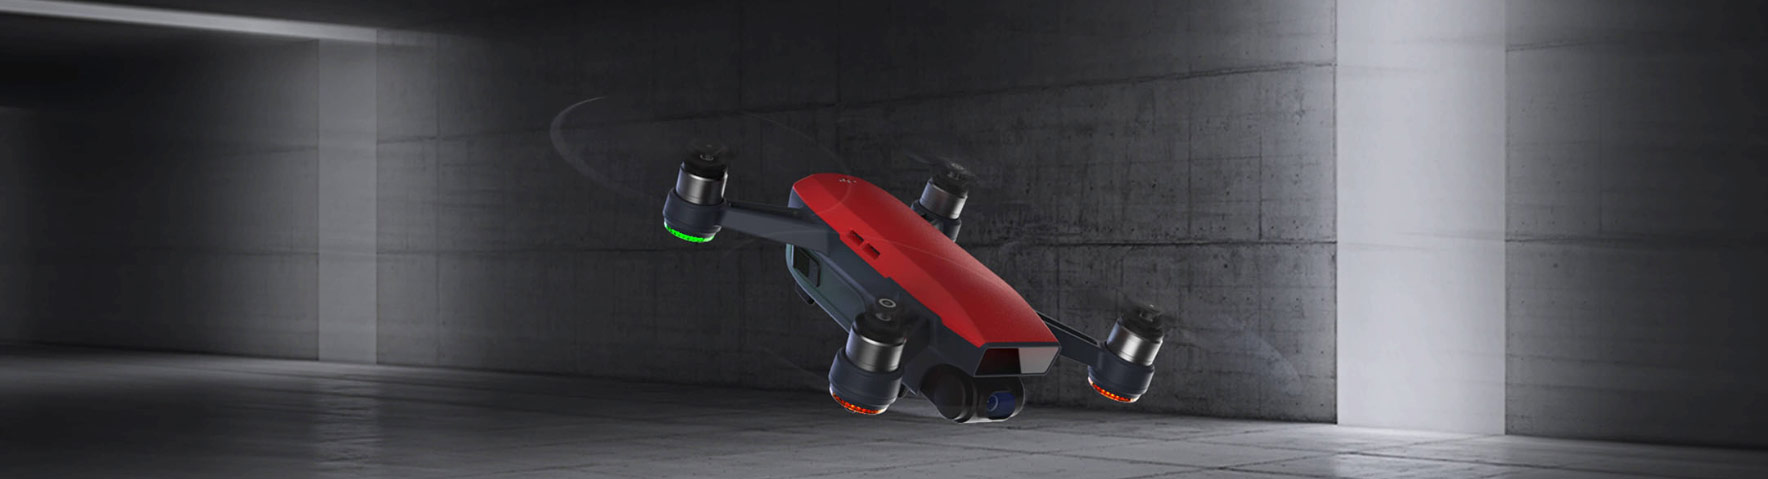 The Pint-Sized DJI Spark Drone Offers Fun Features, Reasonable Price Tag